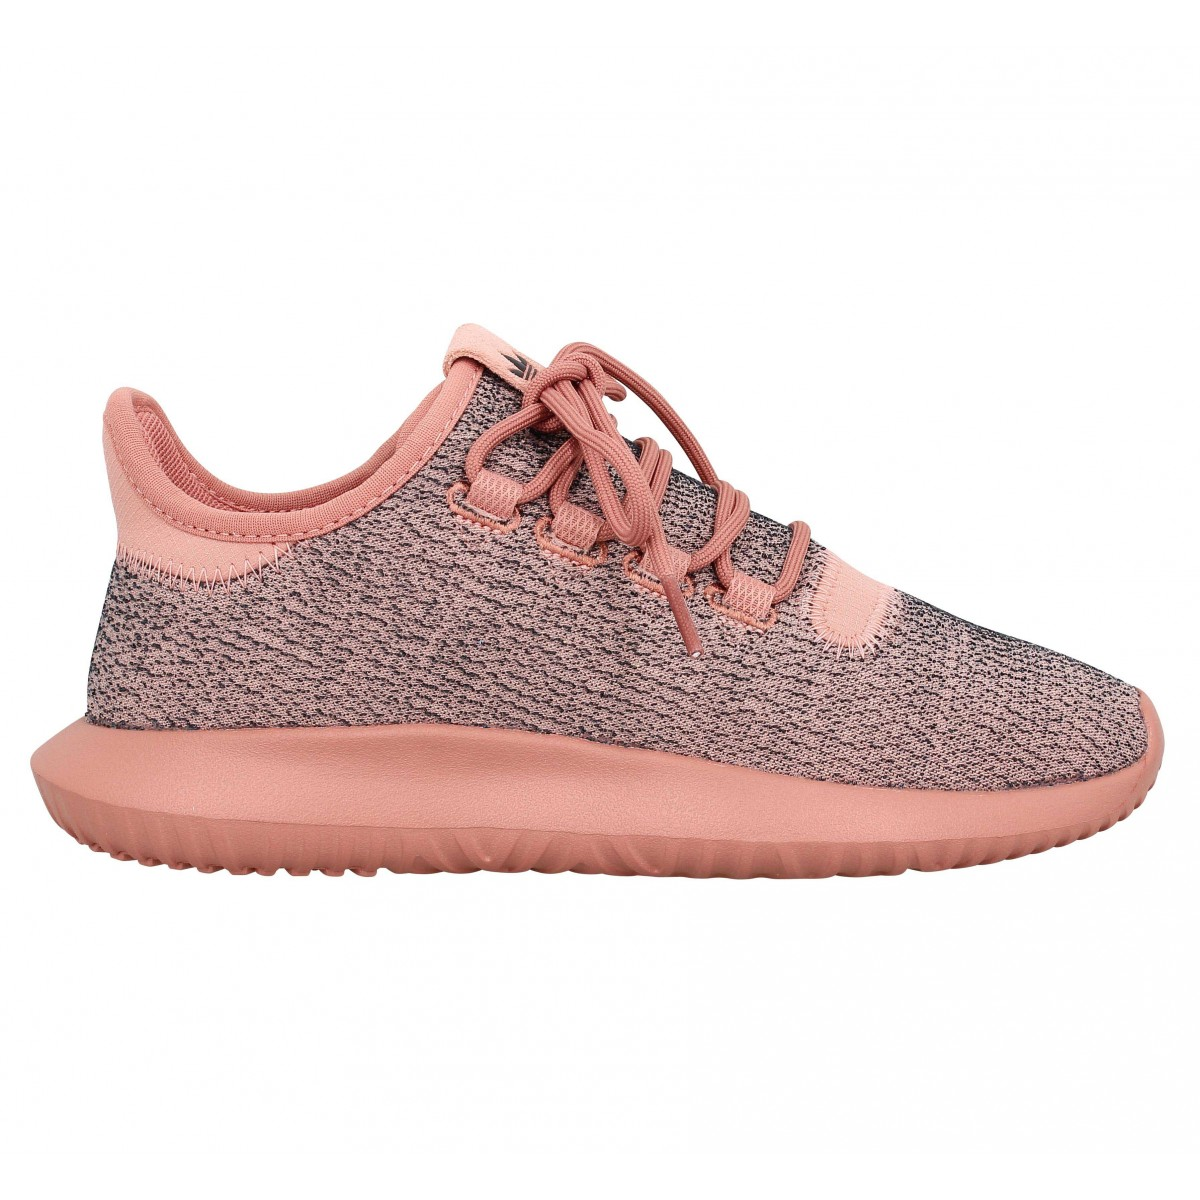 adidas tubular shadow rosse